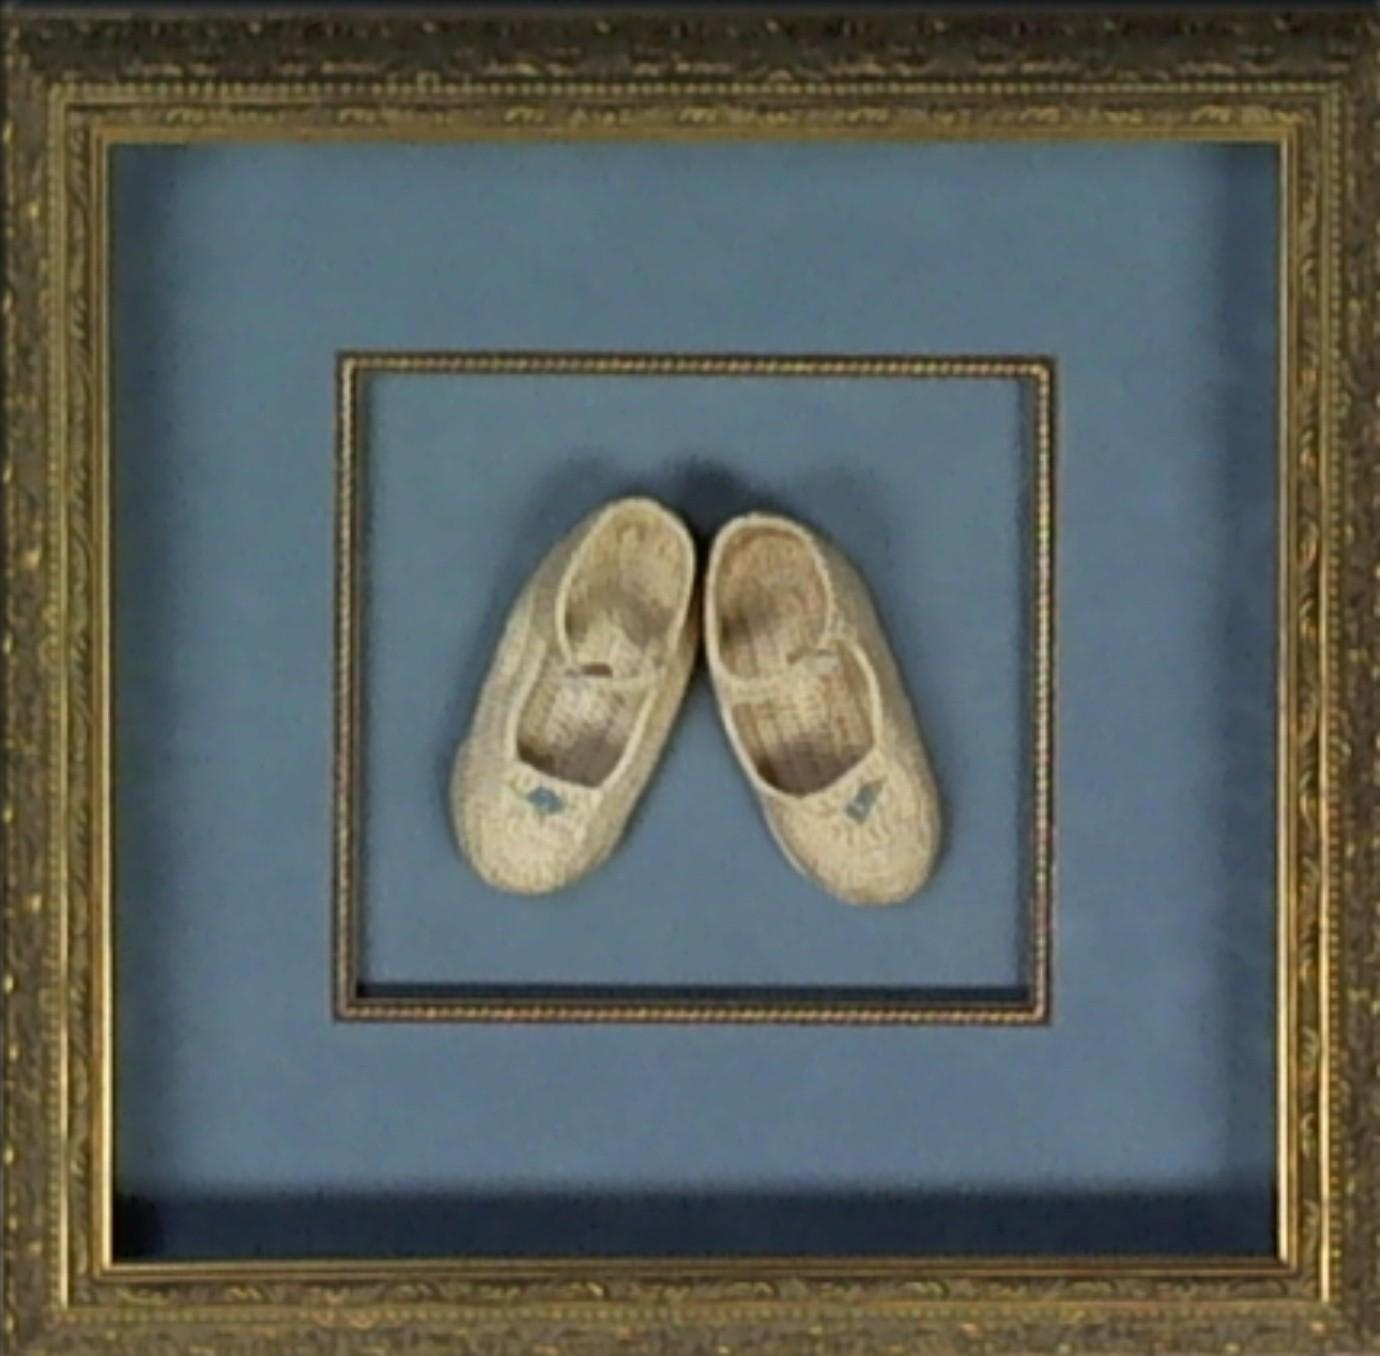 shadowbox ideas - baby booties